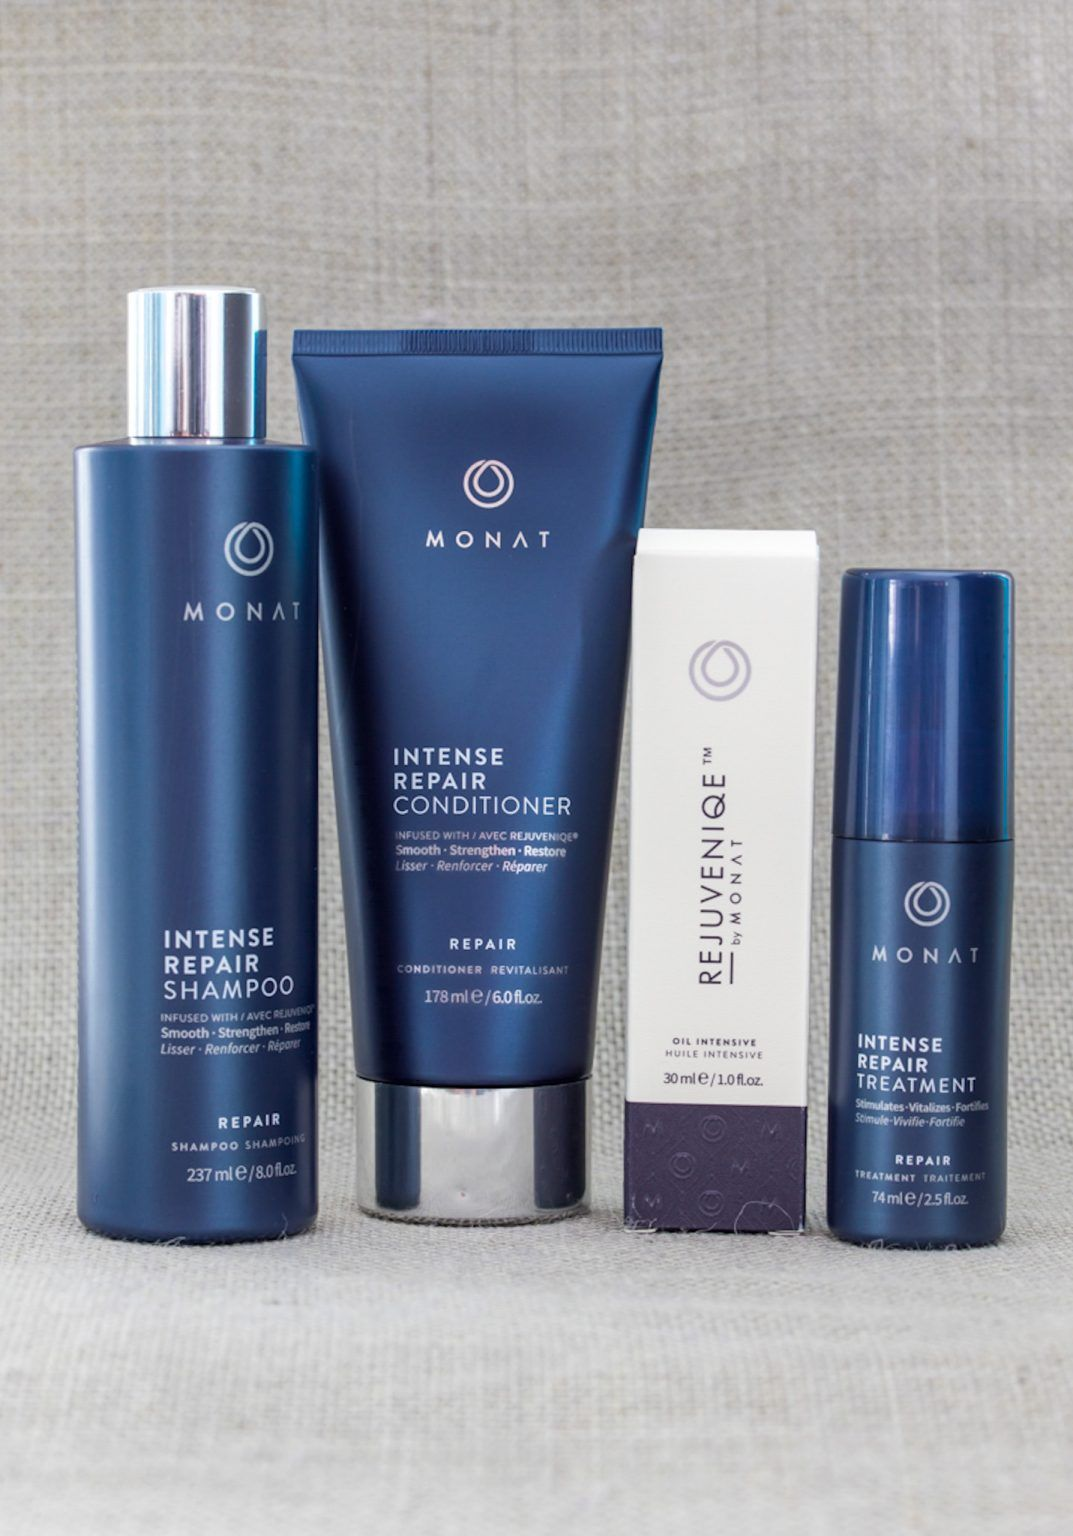 My Review of Monat Products After Three Months Use in 2020